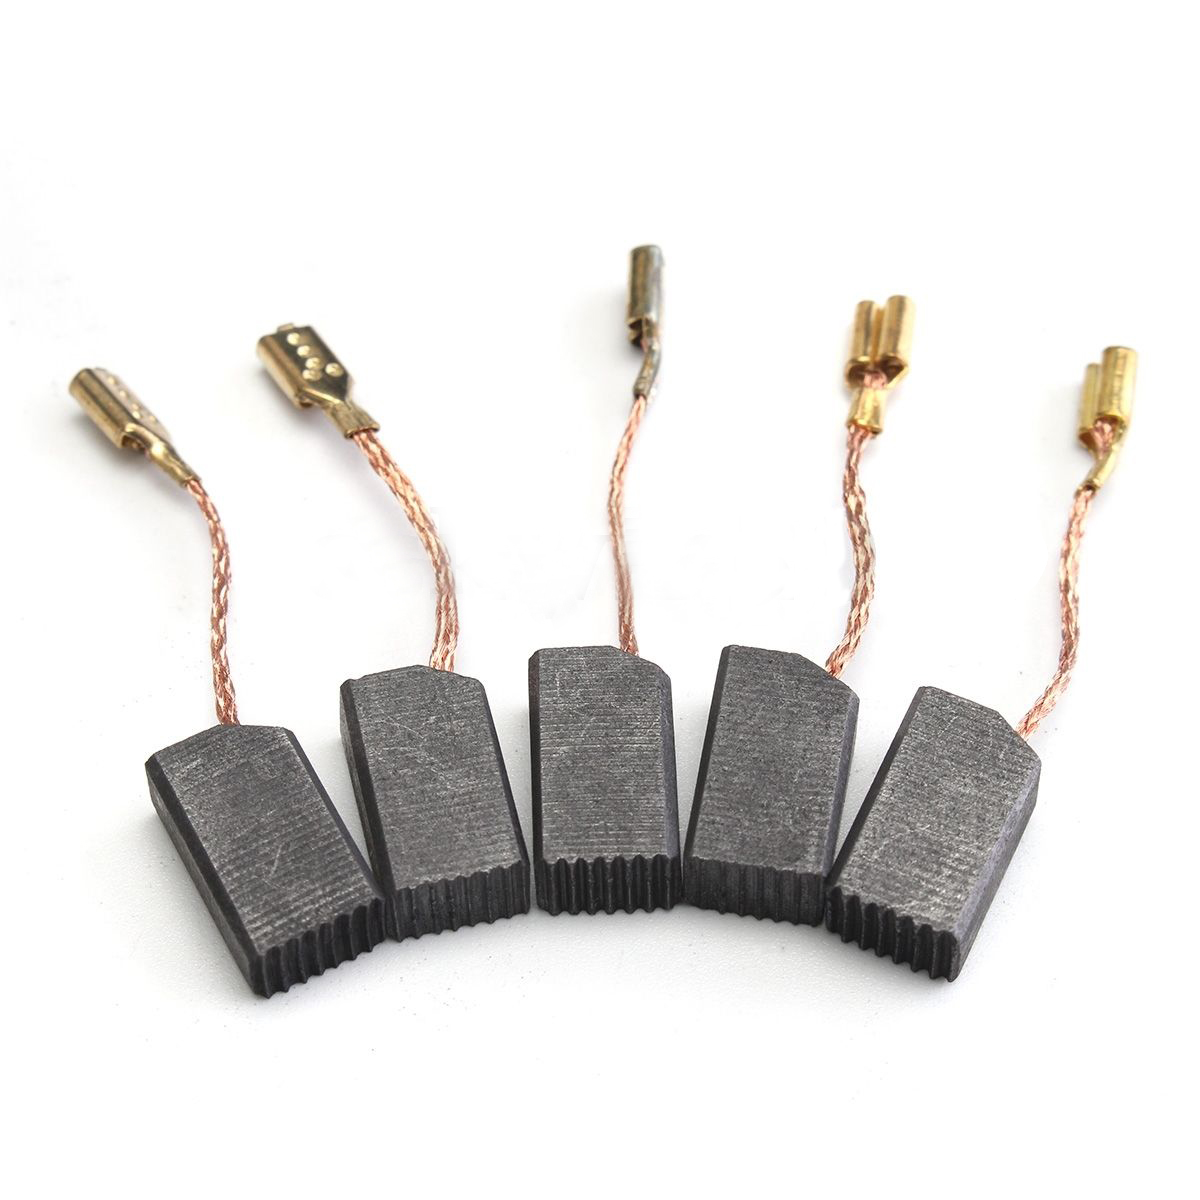 20pcs Conductive Motor Carbon Brushes Set For Angle Grinder Electric Drill Mayitr Tight Copper Wire Carbon Brush 6mm*8mm*14mm 76zy01 mig motor wire feed motor wire feeder motor dc24 1 8 18m min 1pk